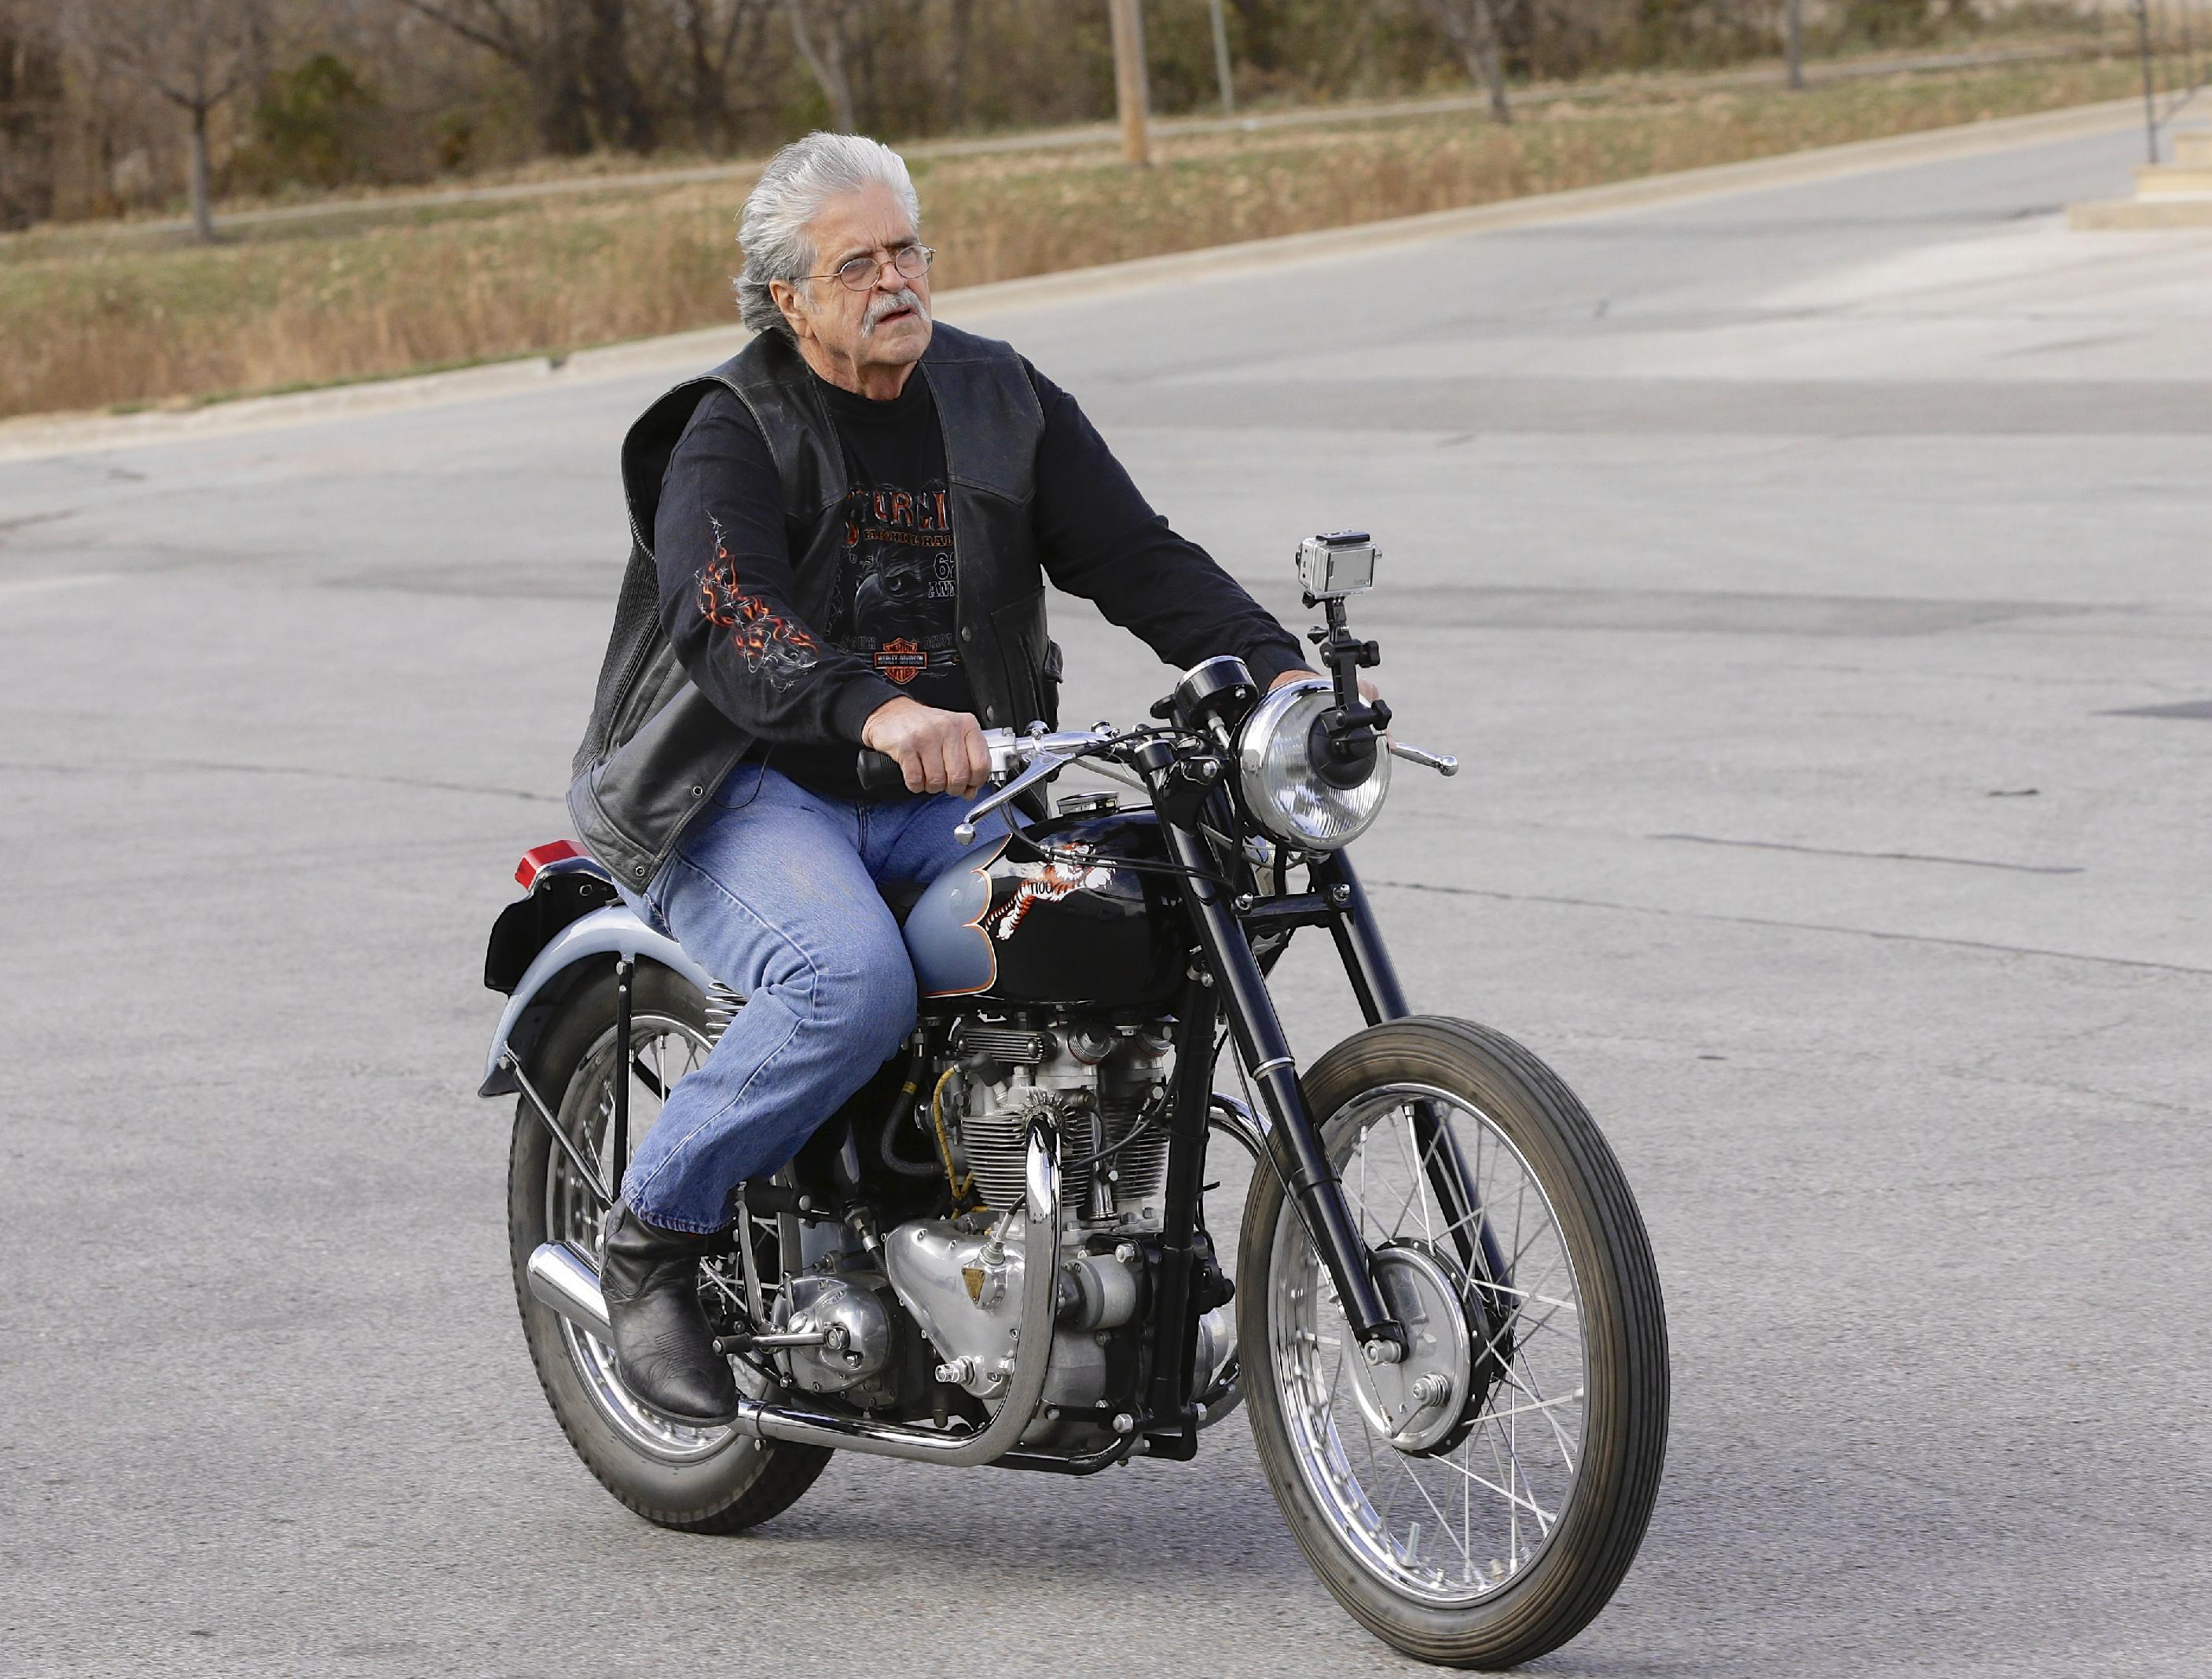 Donald DeVault, 73, rides his motorcycle in a parking lot in Omaha, Neb., after it was returned to him on Wednesday, Nov. 20, 2013. It was the first time he had seen the bike since it was stolen 46 years ago. California authorities had recovered his 1953 Triumph Tiger 100 at the Port of Los Angeles where it was about to be shipped to Japan. (AP Photo/Nati Harnik)